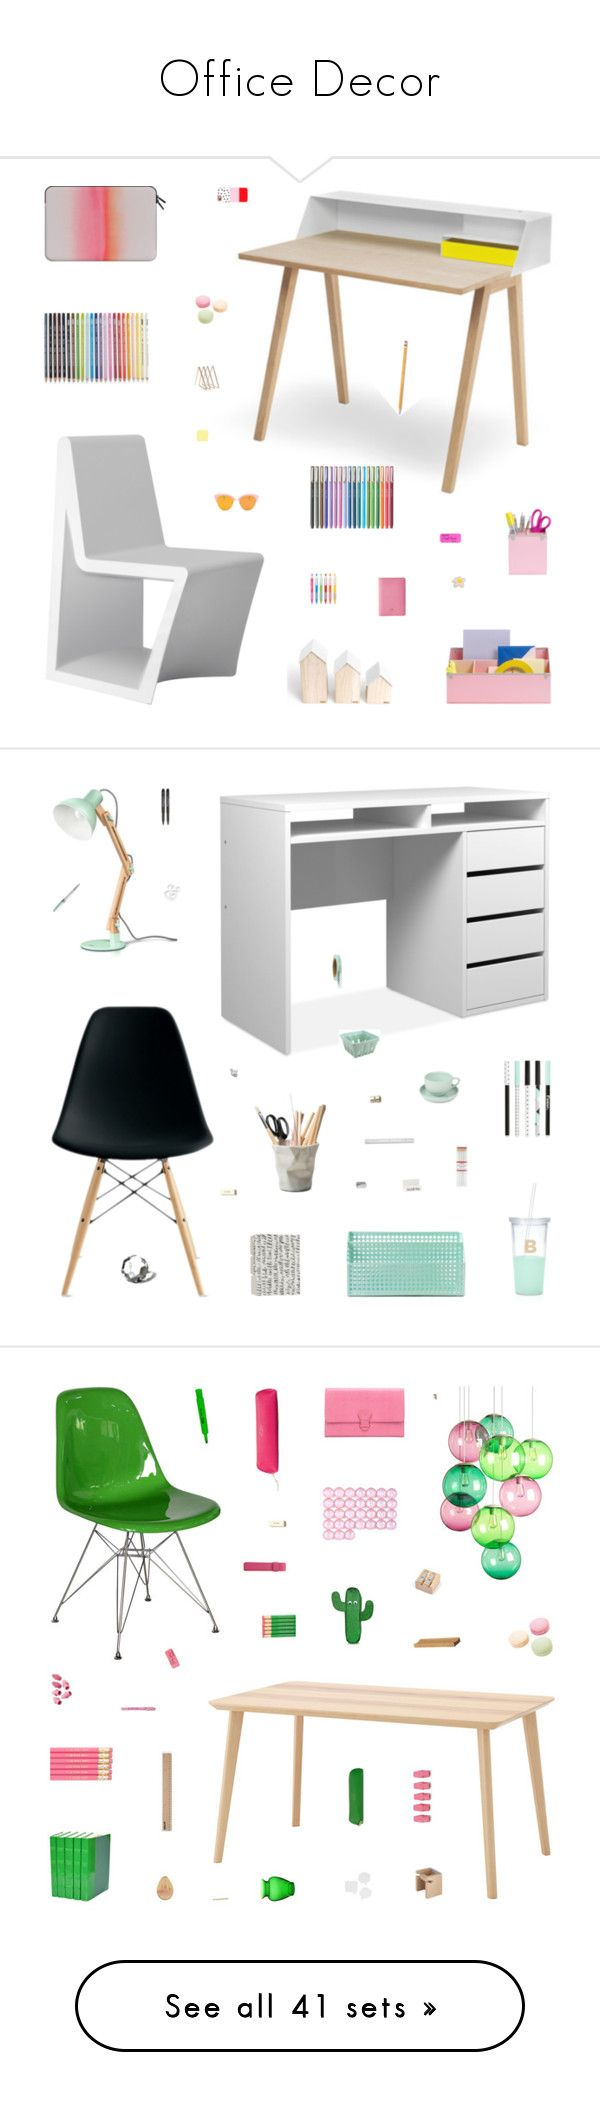 """Office Decor"" by belenloperfido ❤ liked on Polyvore featuring interior, interiors, interior design, home, home decor, interior decorating, Vondom, Benjamin Moore, Kate Spade and Casetify"